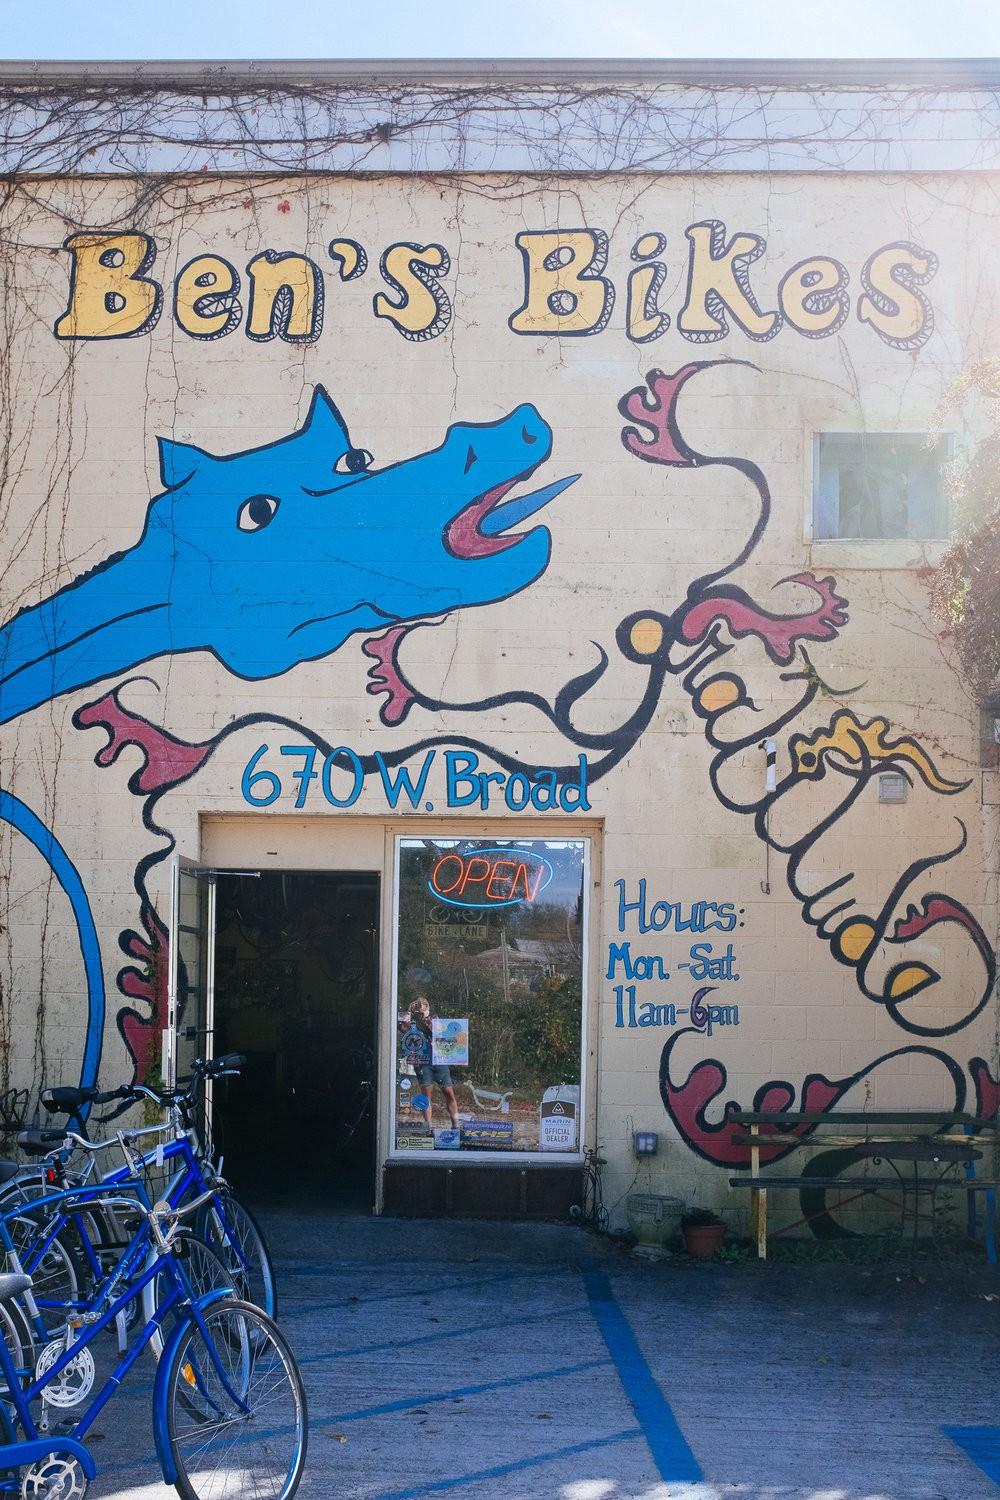 Another cool hipster bike shop in Athens, Georgia. Still no sight of Michael Stipe, though.